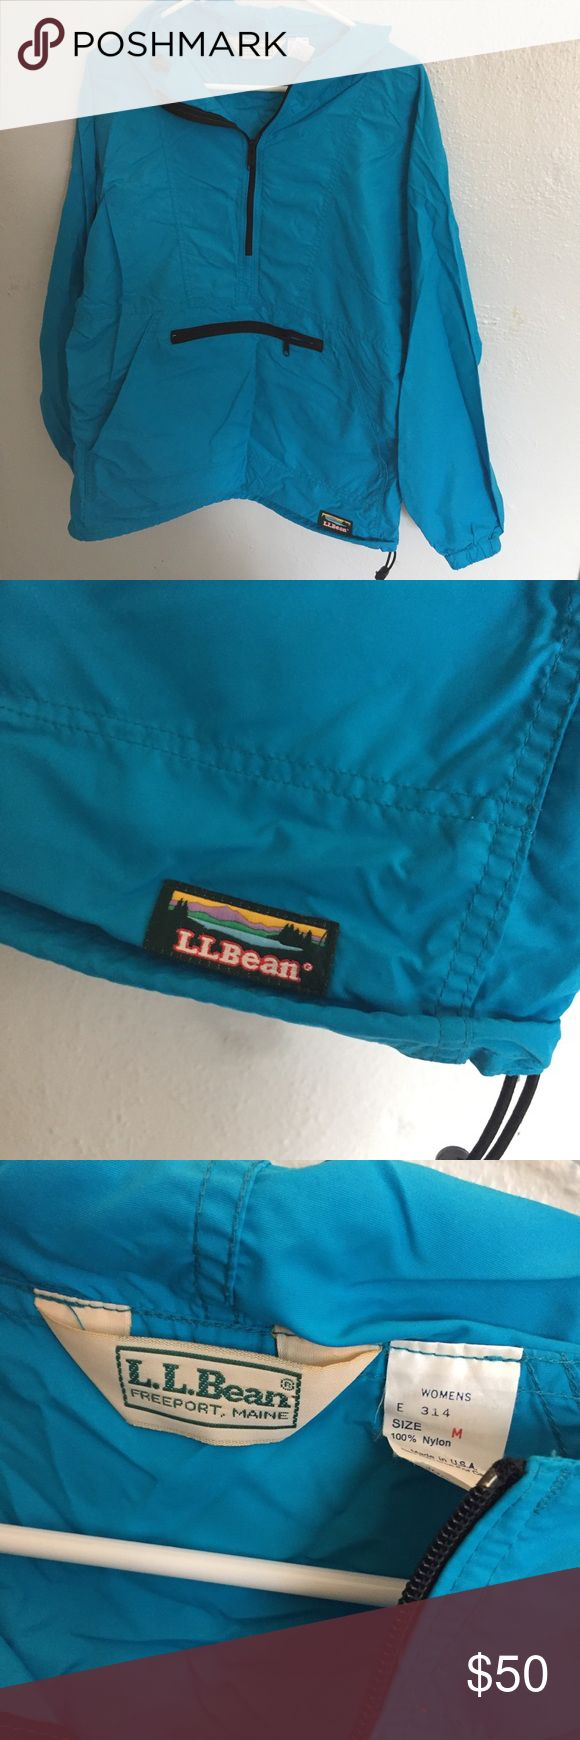 Vintage LL Bean Anorak Windbreaker Vintage bright blue water resistant coat. No rips tears or stains. L.L. Bean Jackets & Coats